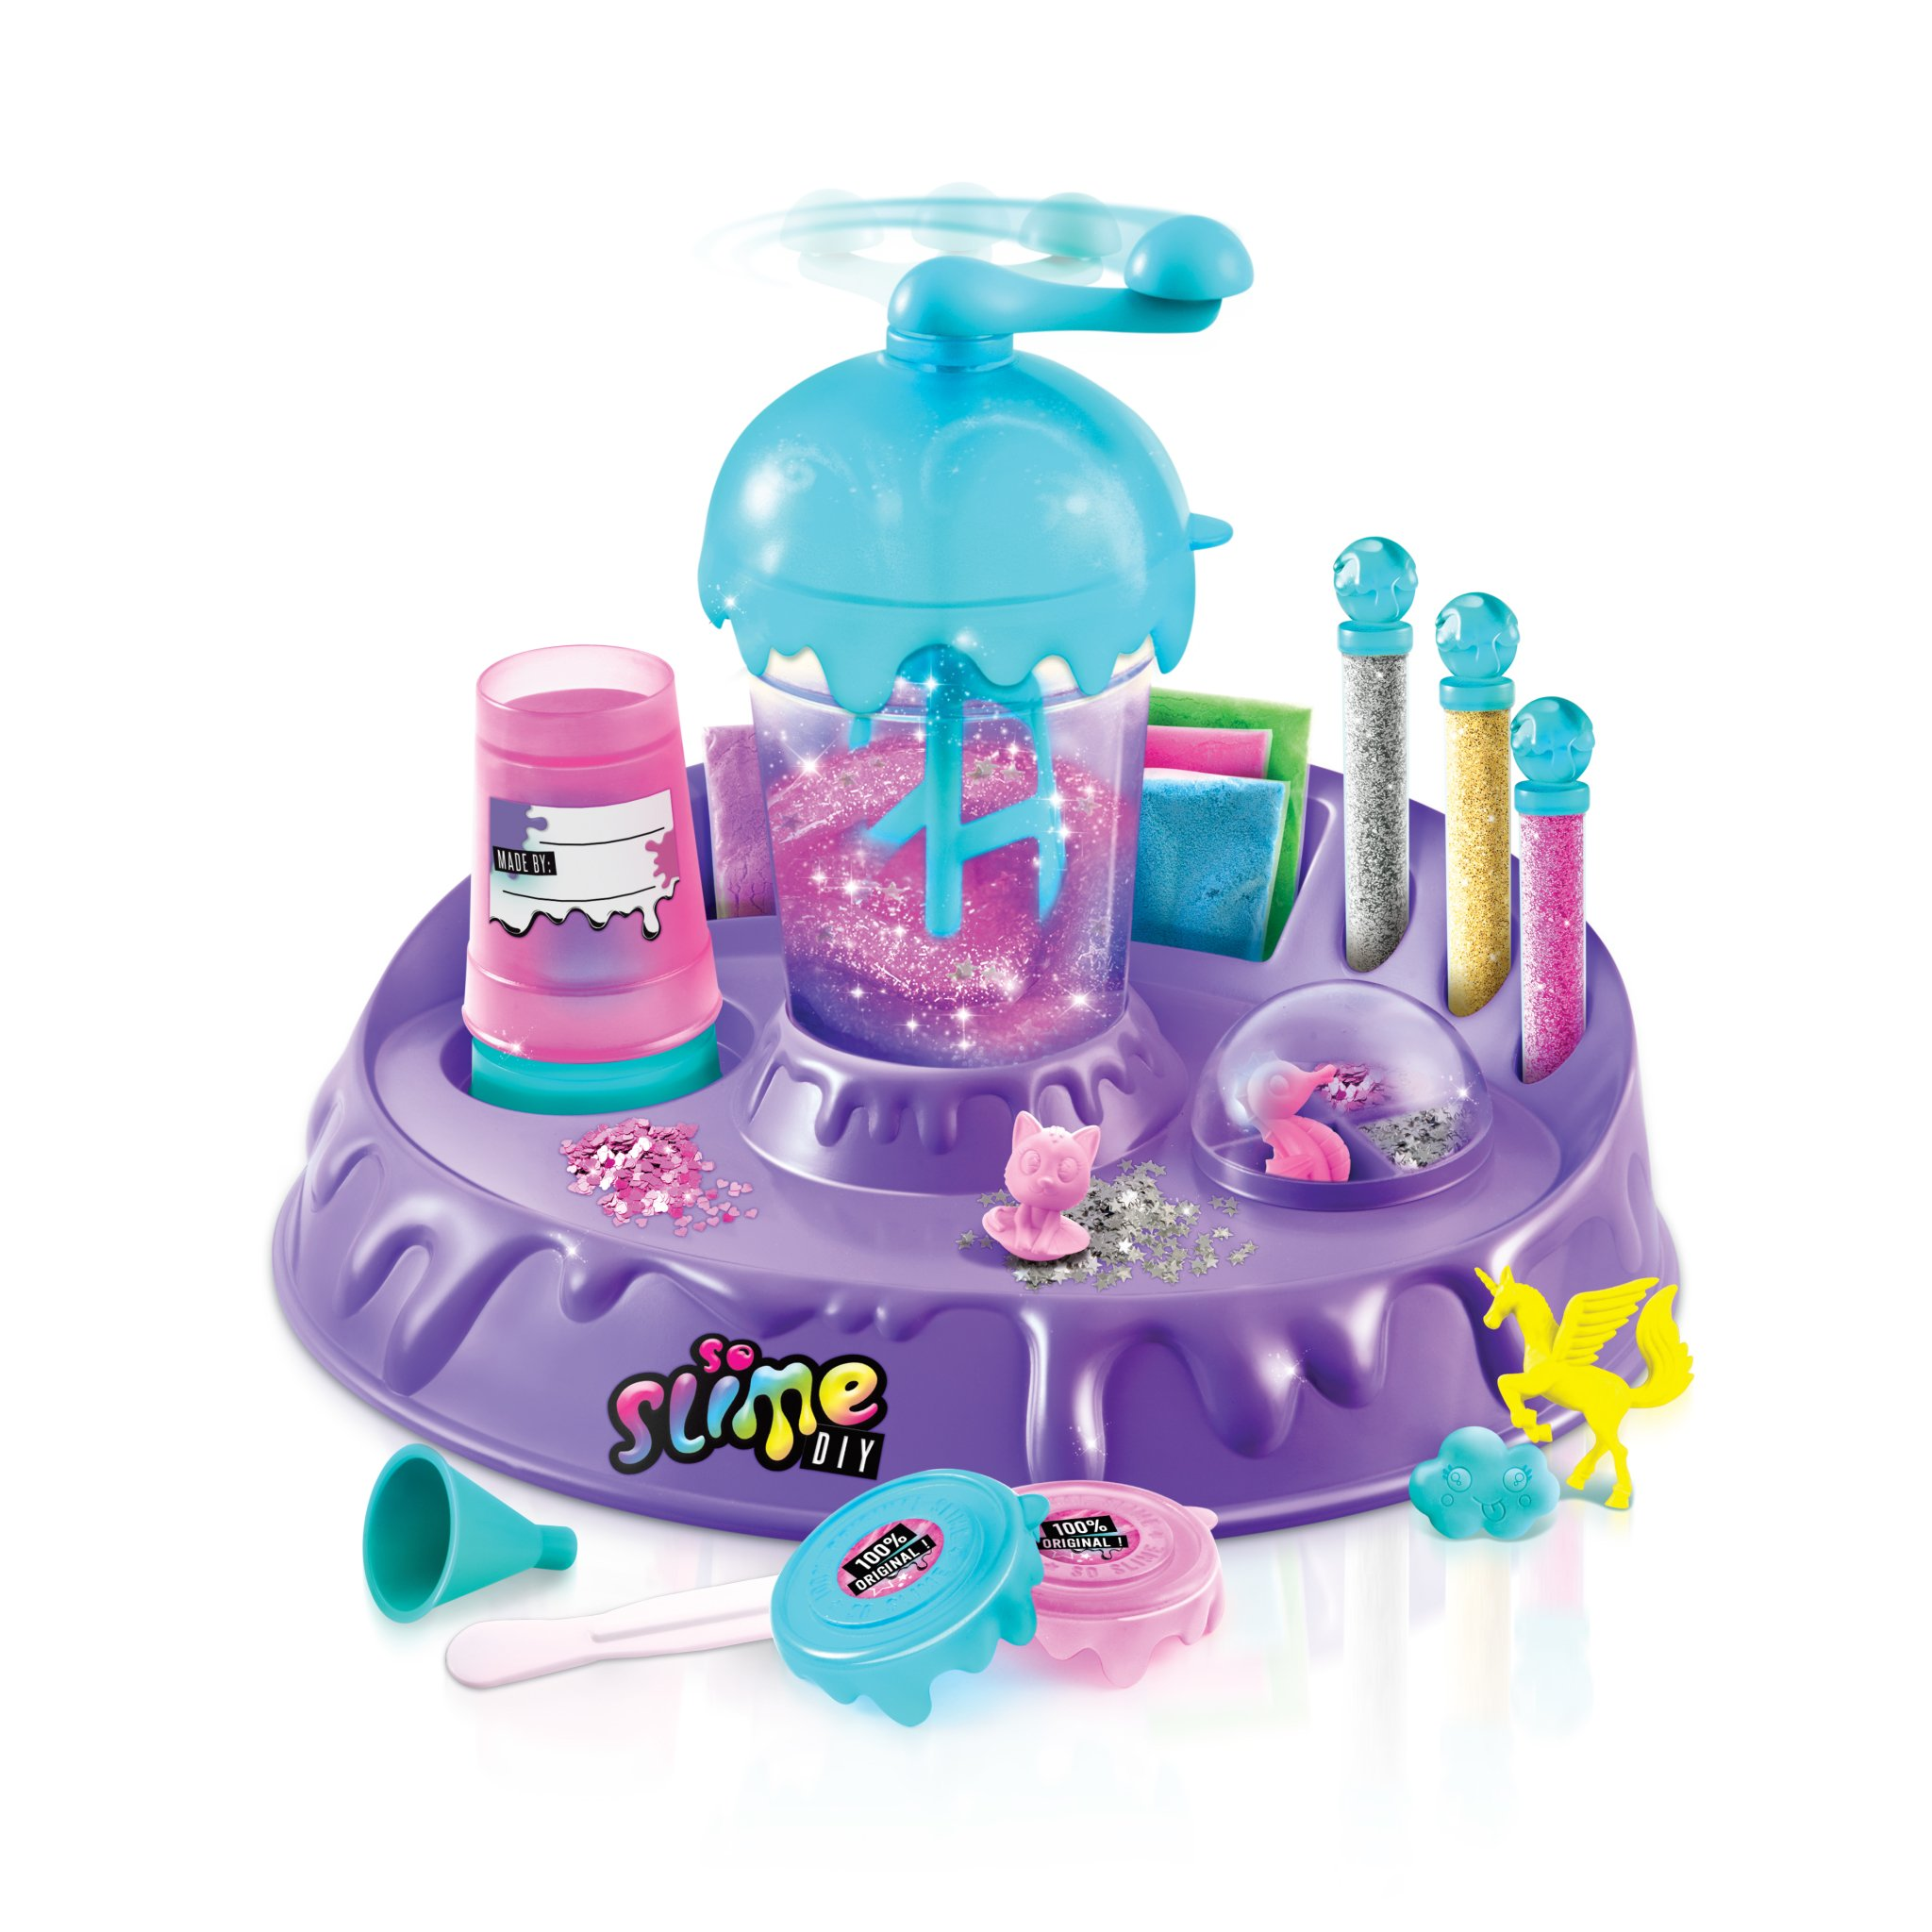 CANAL TOYS So Slime Factory by CANAL TOYS (Image #2)